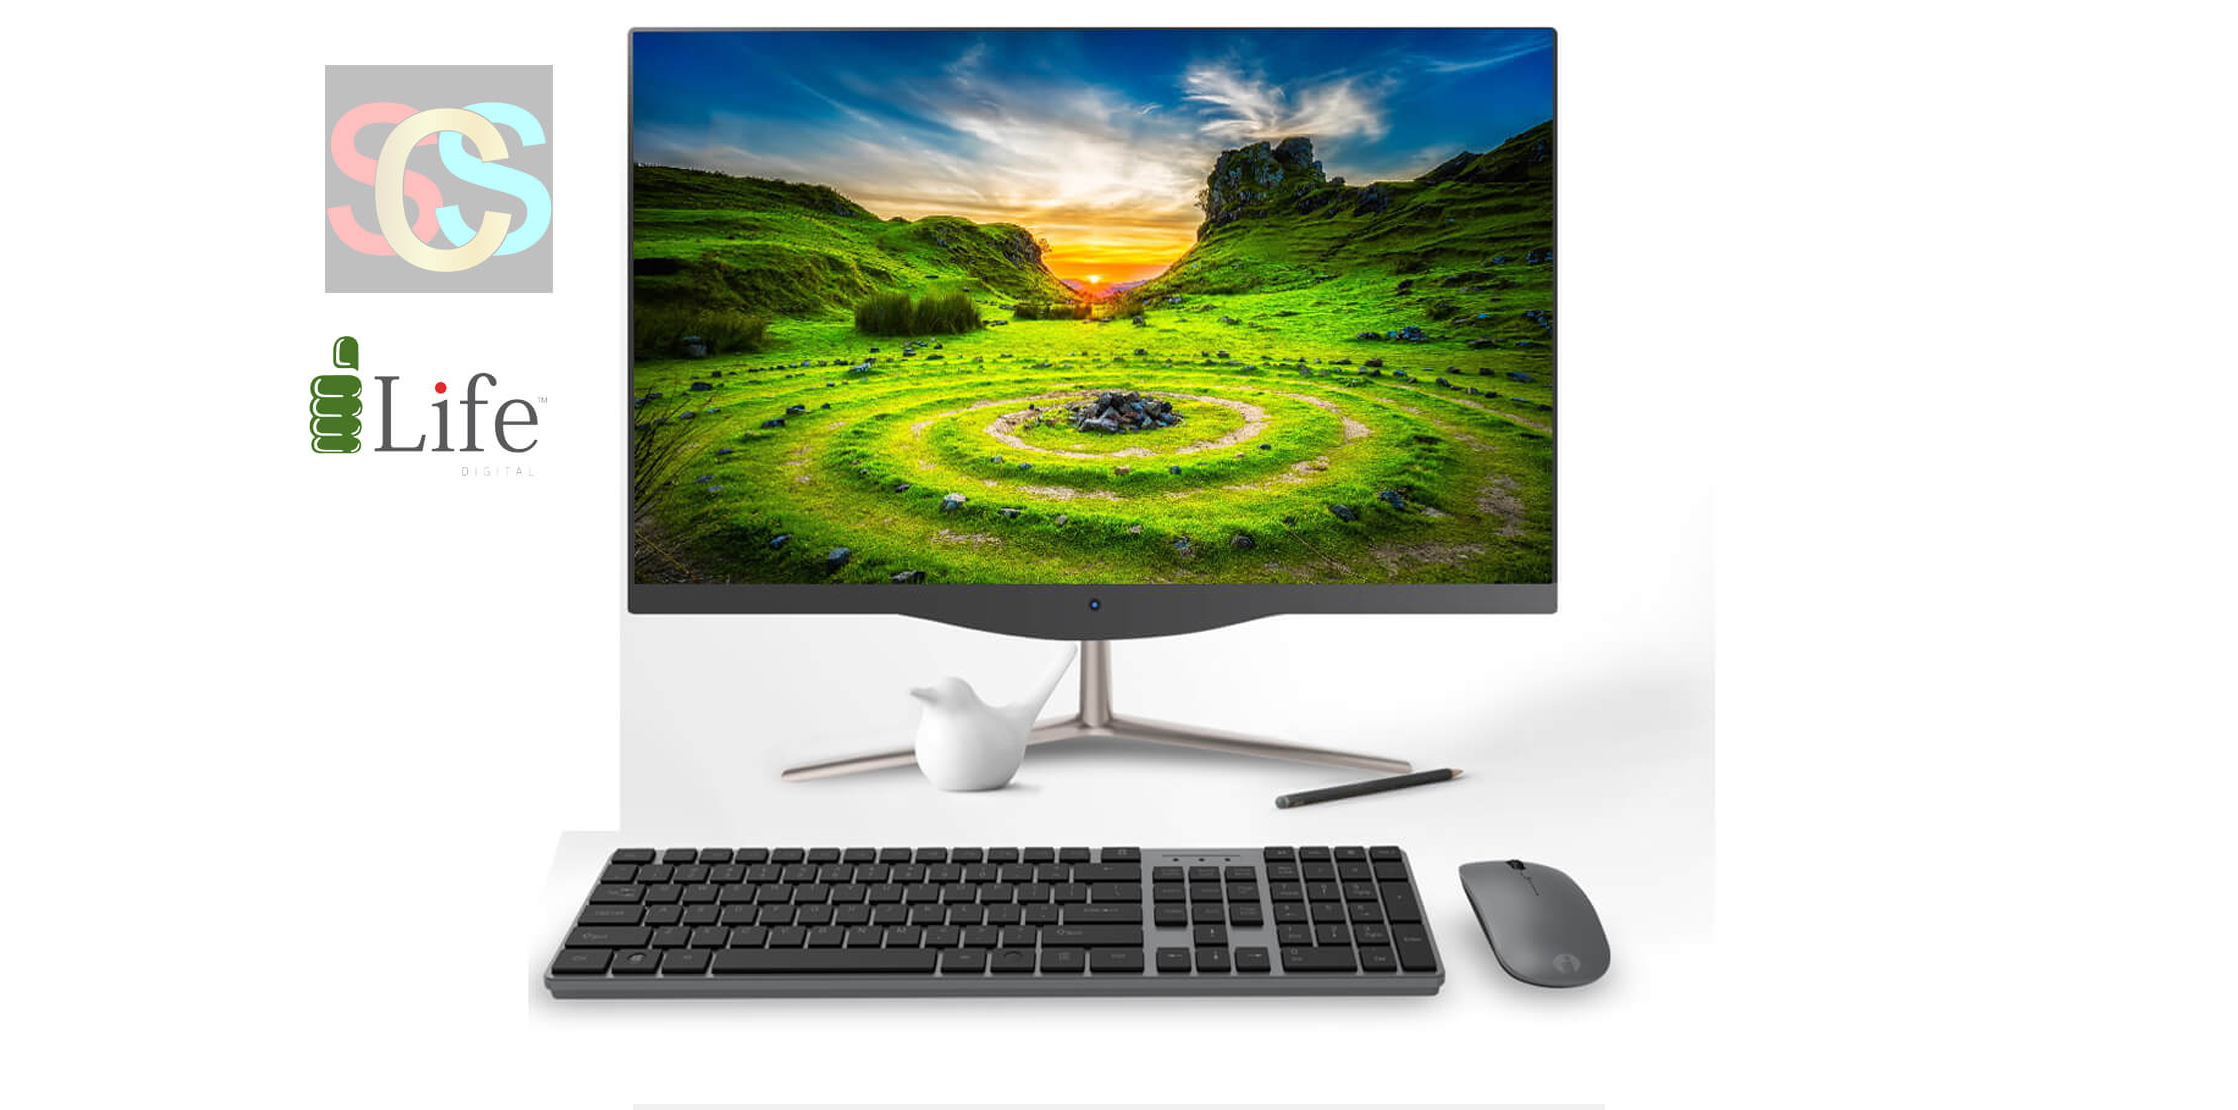 I-life Zed PC CX3 All in One PC with Intel Core i3 5005U All-in-One PC (Black)